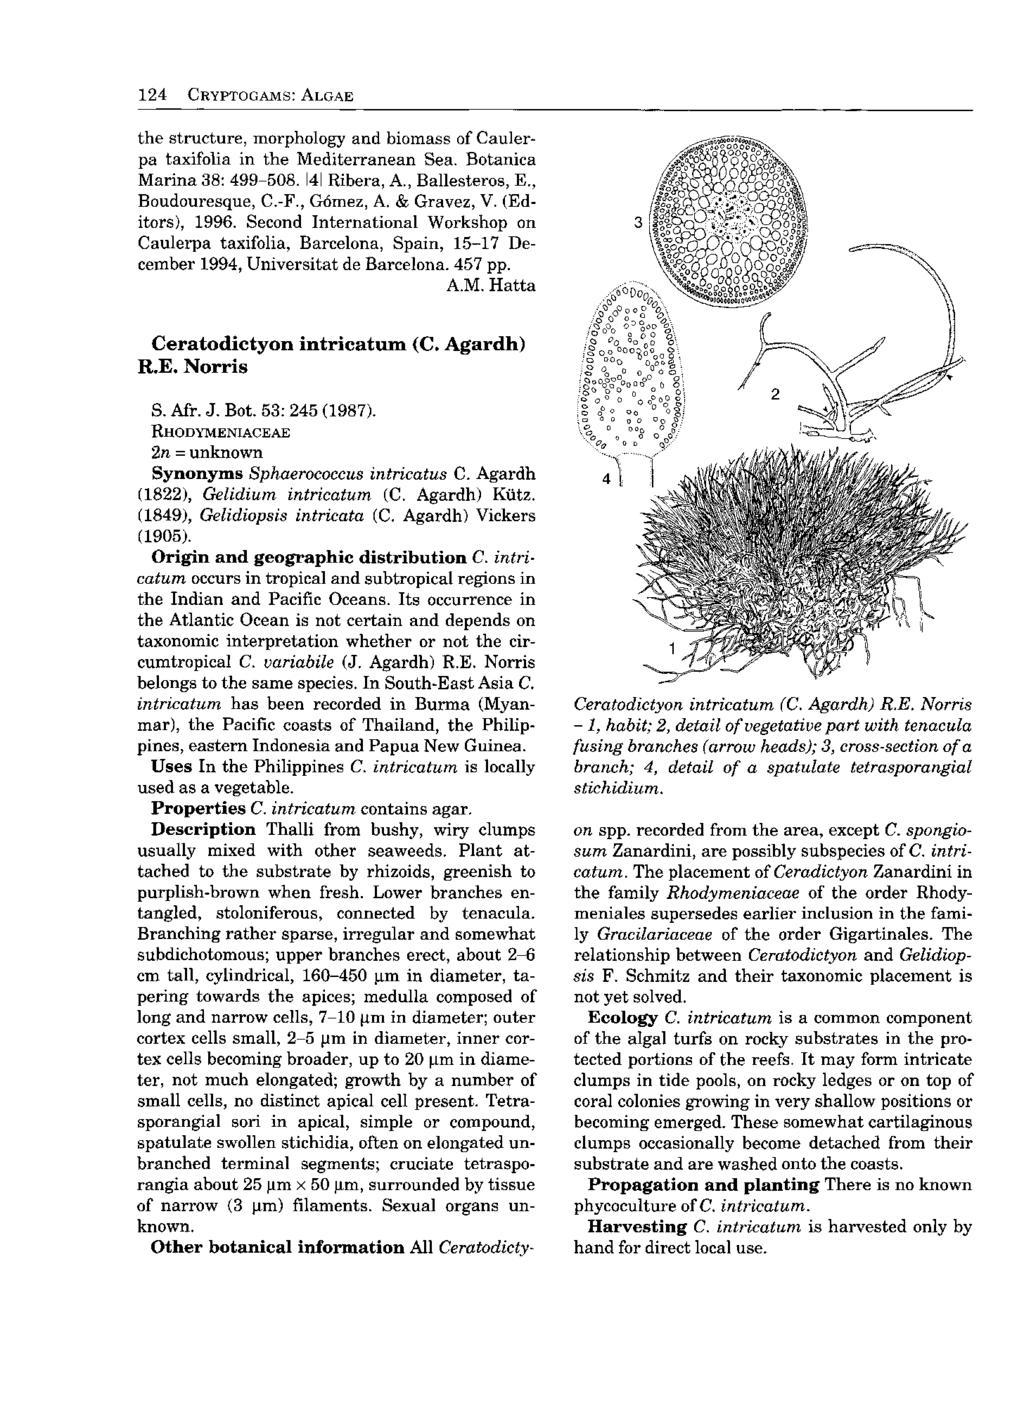 Vqvj Fyy 0v Plant Resources Of South East Asia No 15 1 Voucher Giant Rp 800000 124 Cryptogams Algae The Structure Morphology And Biomass Caulerpa Taxifolia In Mediterranean